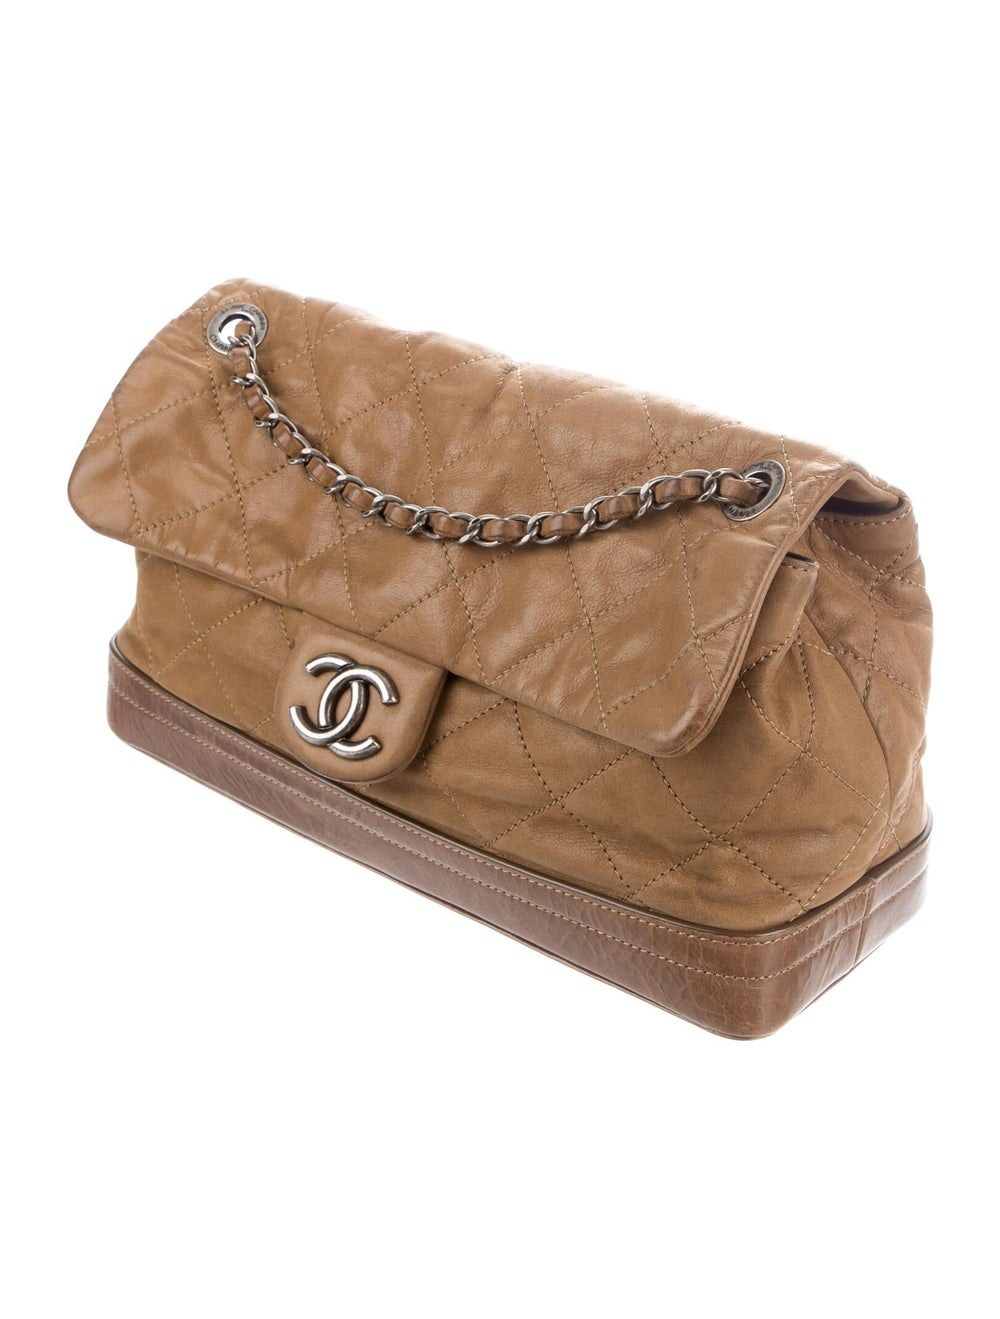 Chanel VIP Flap Bag Brown - image 3